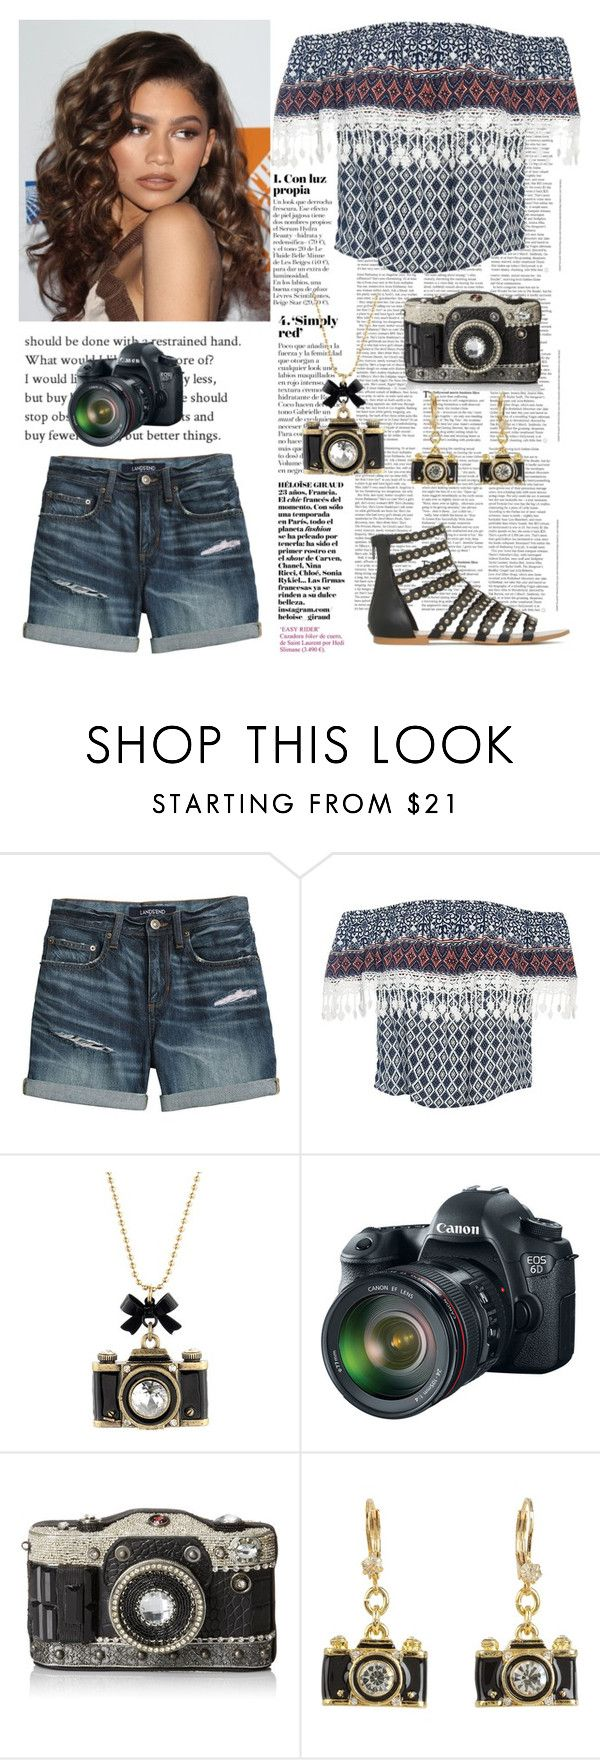 """Photo bomb"" by tjoyreeves1 ❤ liked on Polyvore featuring Canvas by Lands' End, Sans Souci, Coleman, Betsey Johnson, Eos and Mary Frances Accessories"